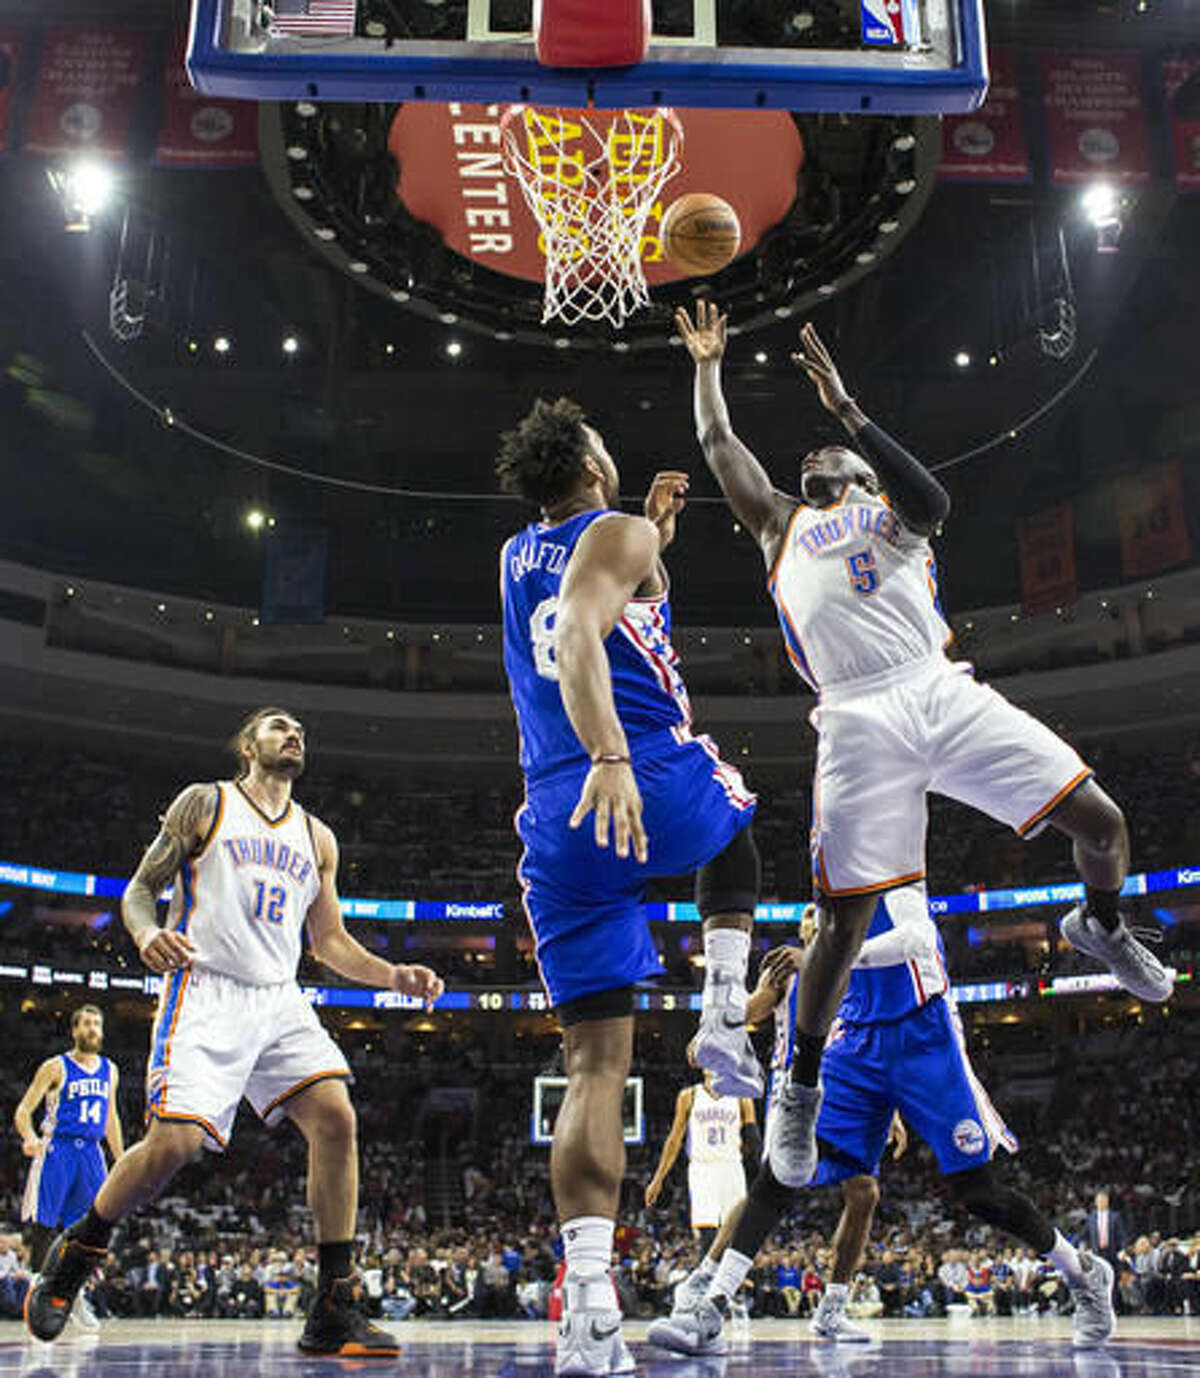 Oklahoma City Thunder's Victor Oladipo, right, puts up the shot with Philadelphia 76ers' Jahlil Okafor, left, defending during the first half of an NBA basketball game, Wednesday, Oct. 26, 2016, in Philadelphia. (AP Photo/Chris Szagola)